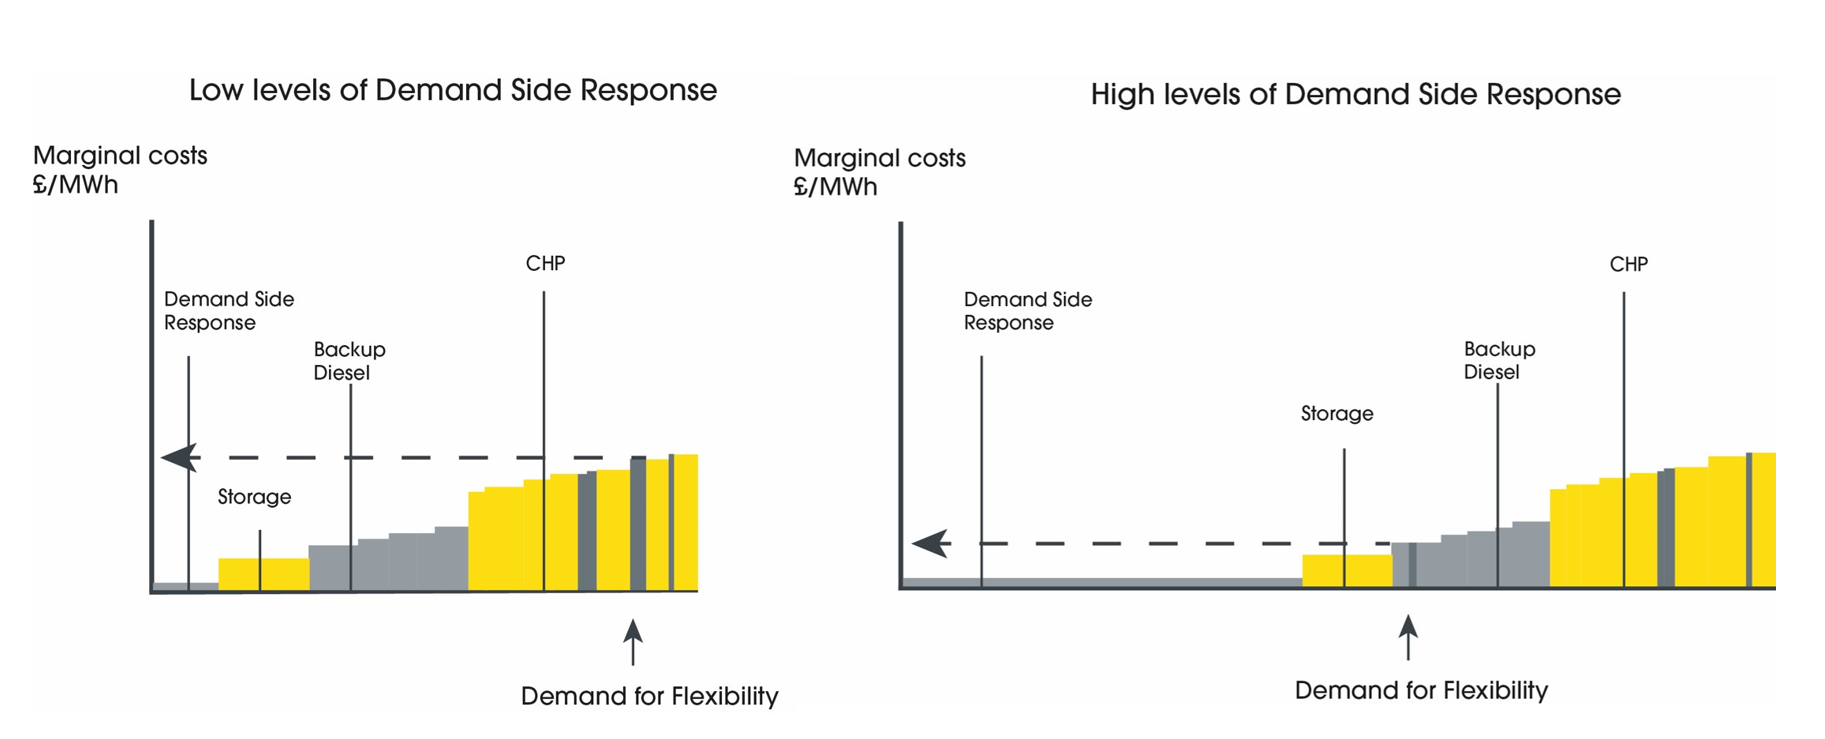 Flexibility Merit Order shows Demand Side Response is lowest cost option